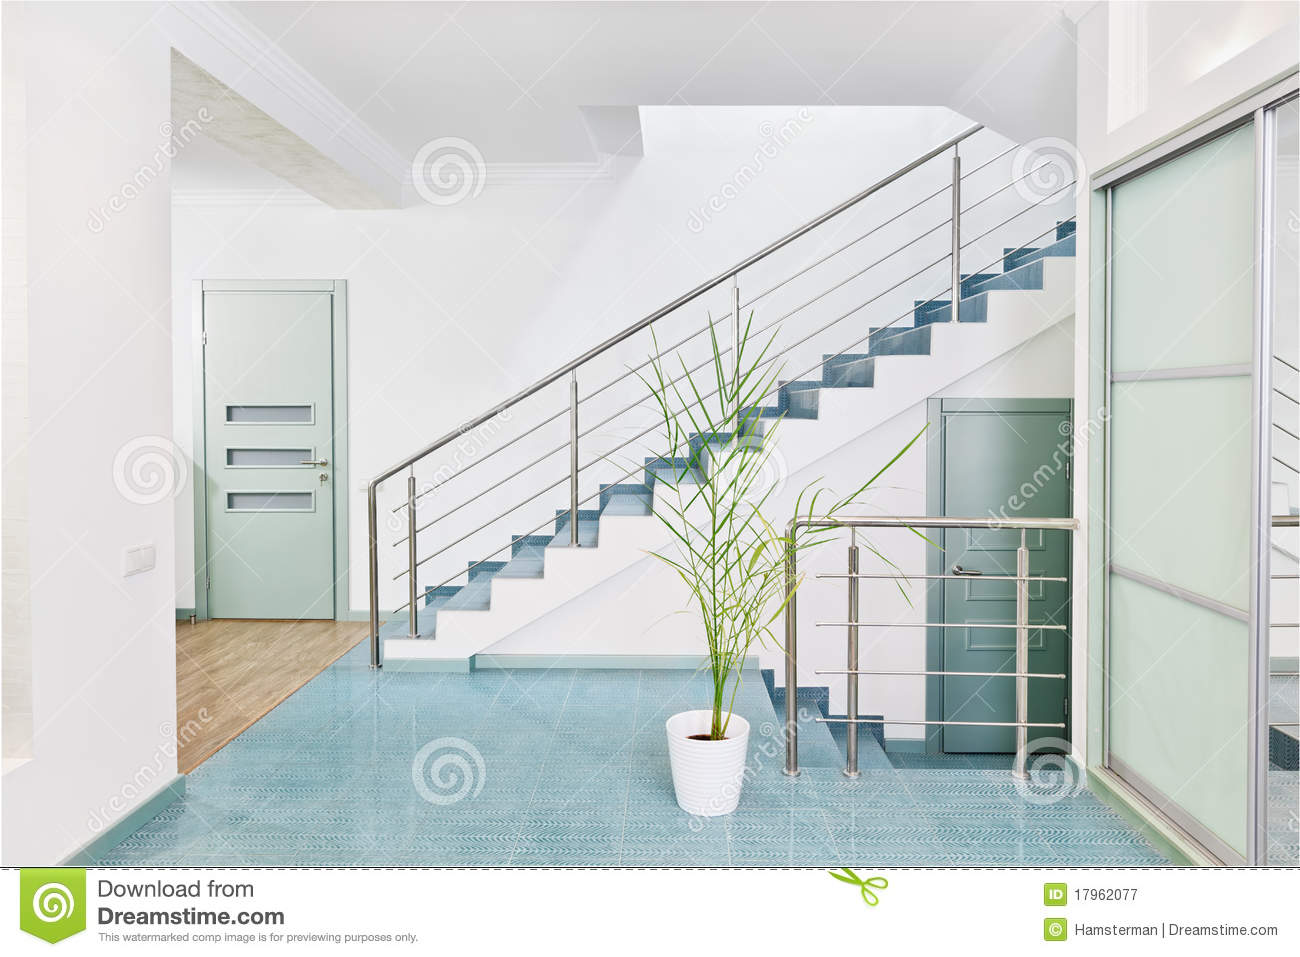 Part of modern hall interior with metal staircase stock for Design d interieur